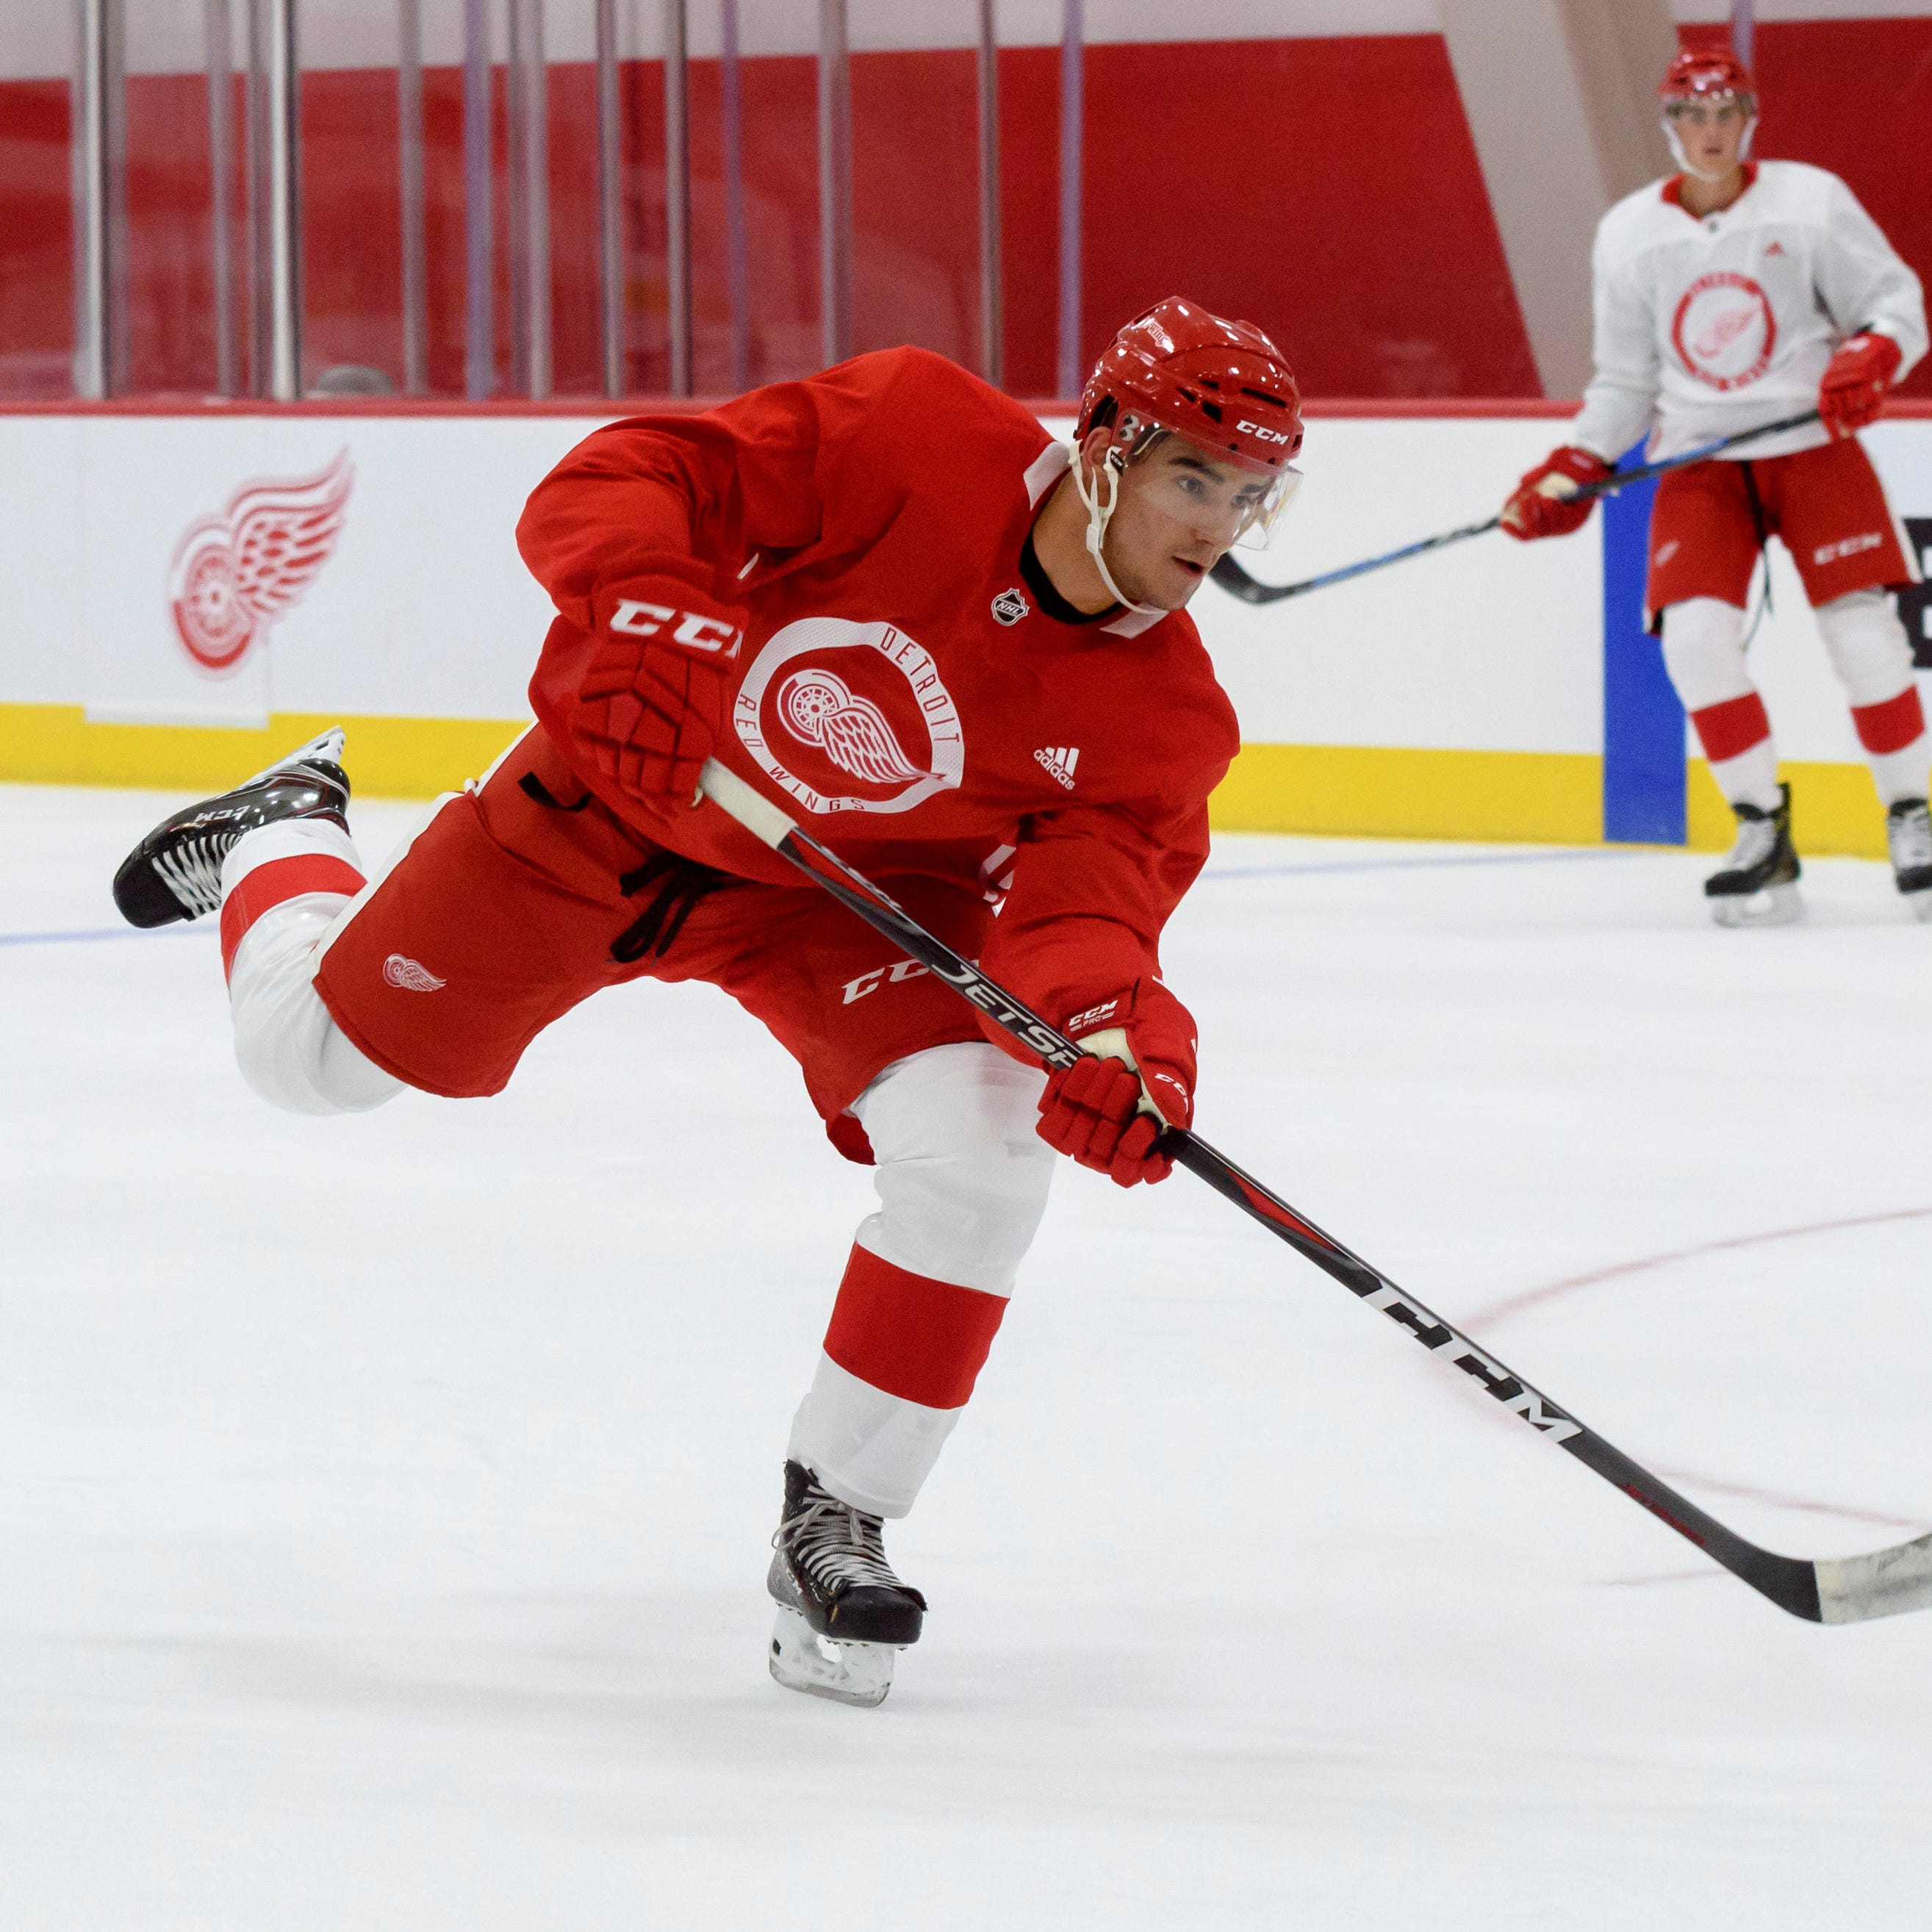 Joe Veleno winning over Blashill, Red Wings with outstanding camp